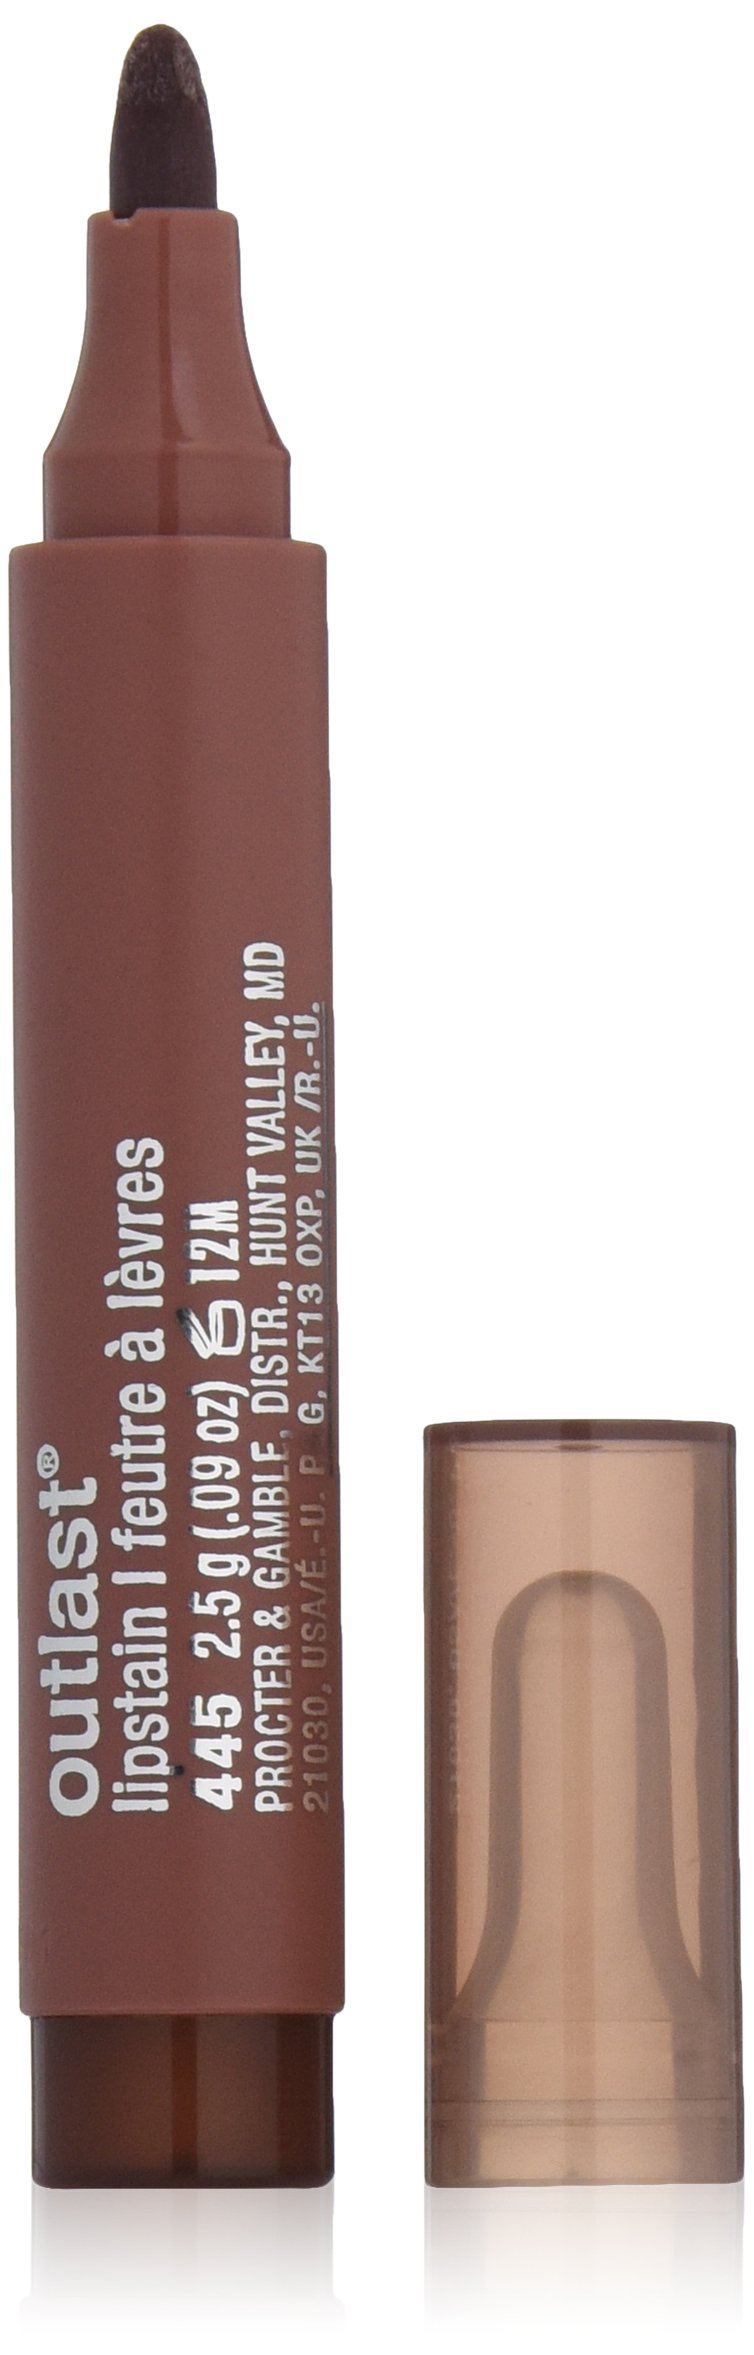 CoverGirl Lip Products CoverGirl Outlast Lipstain, Cinnamon Smile 445, 0.09-Ounce Packages (Pack of 2)